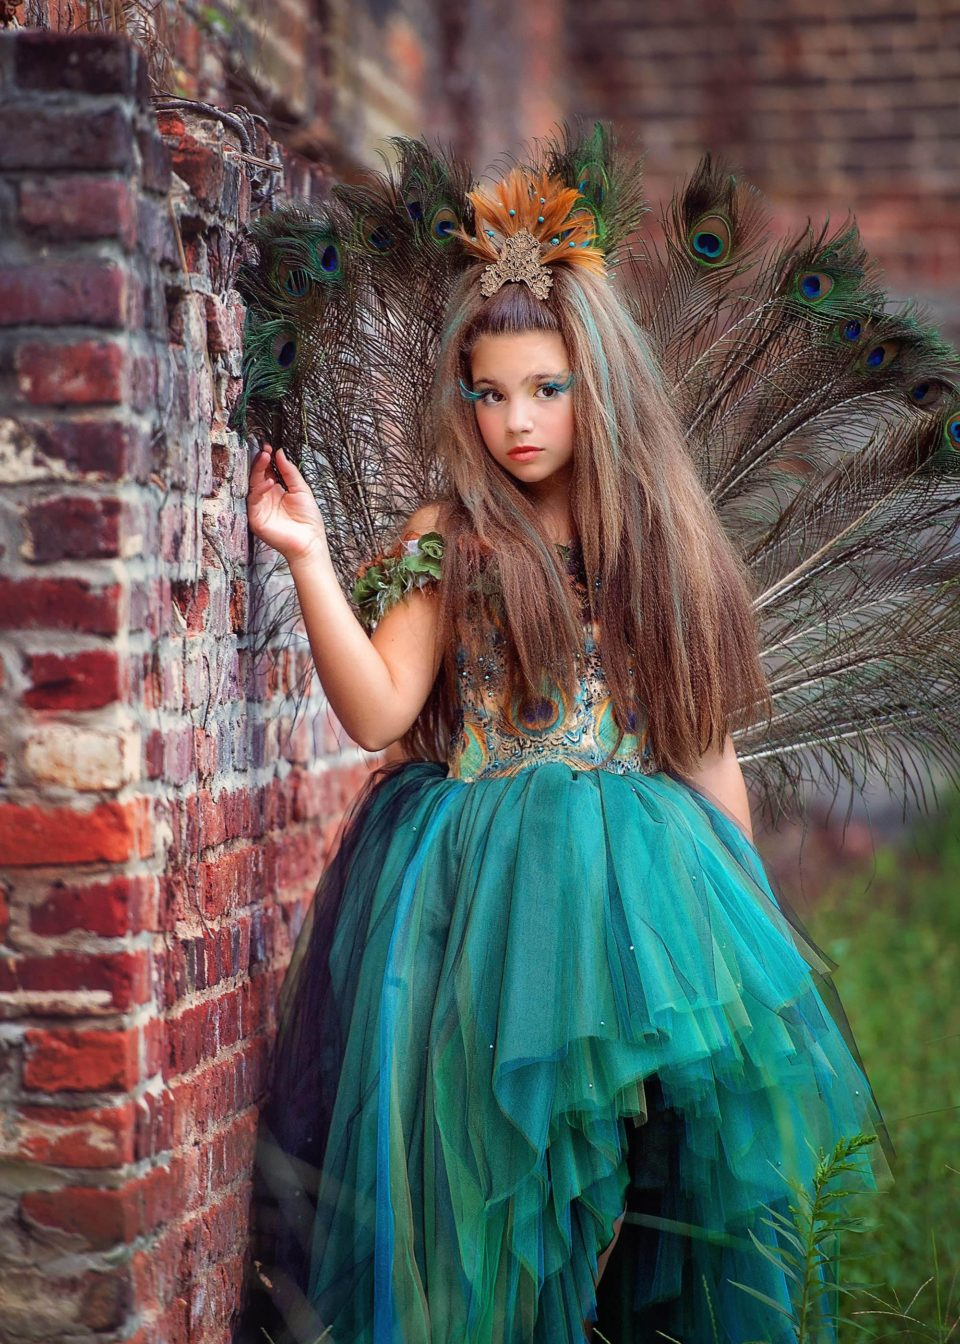 Peacock-Dress-Styled-Photography-copy-1-960x1344.jpg